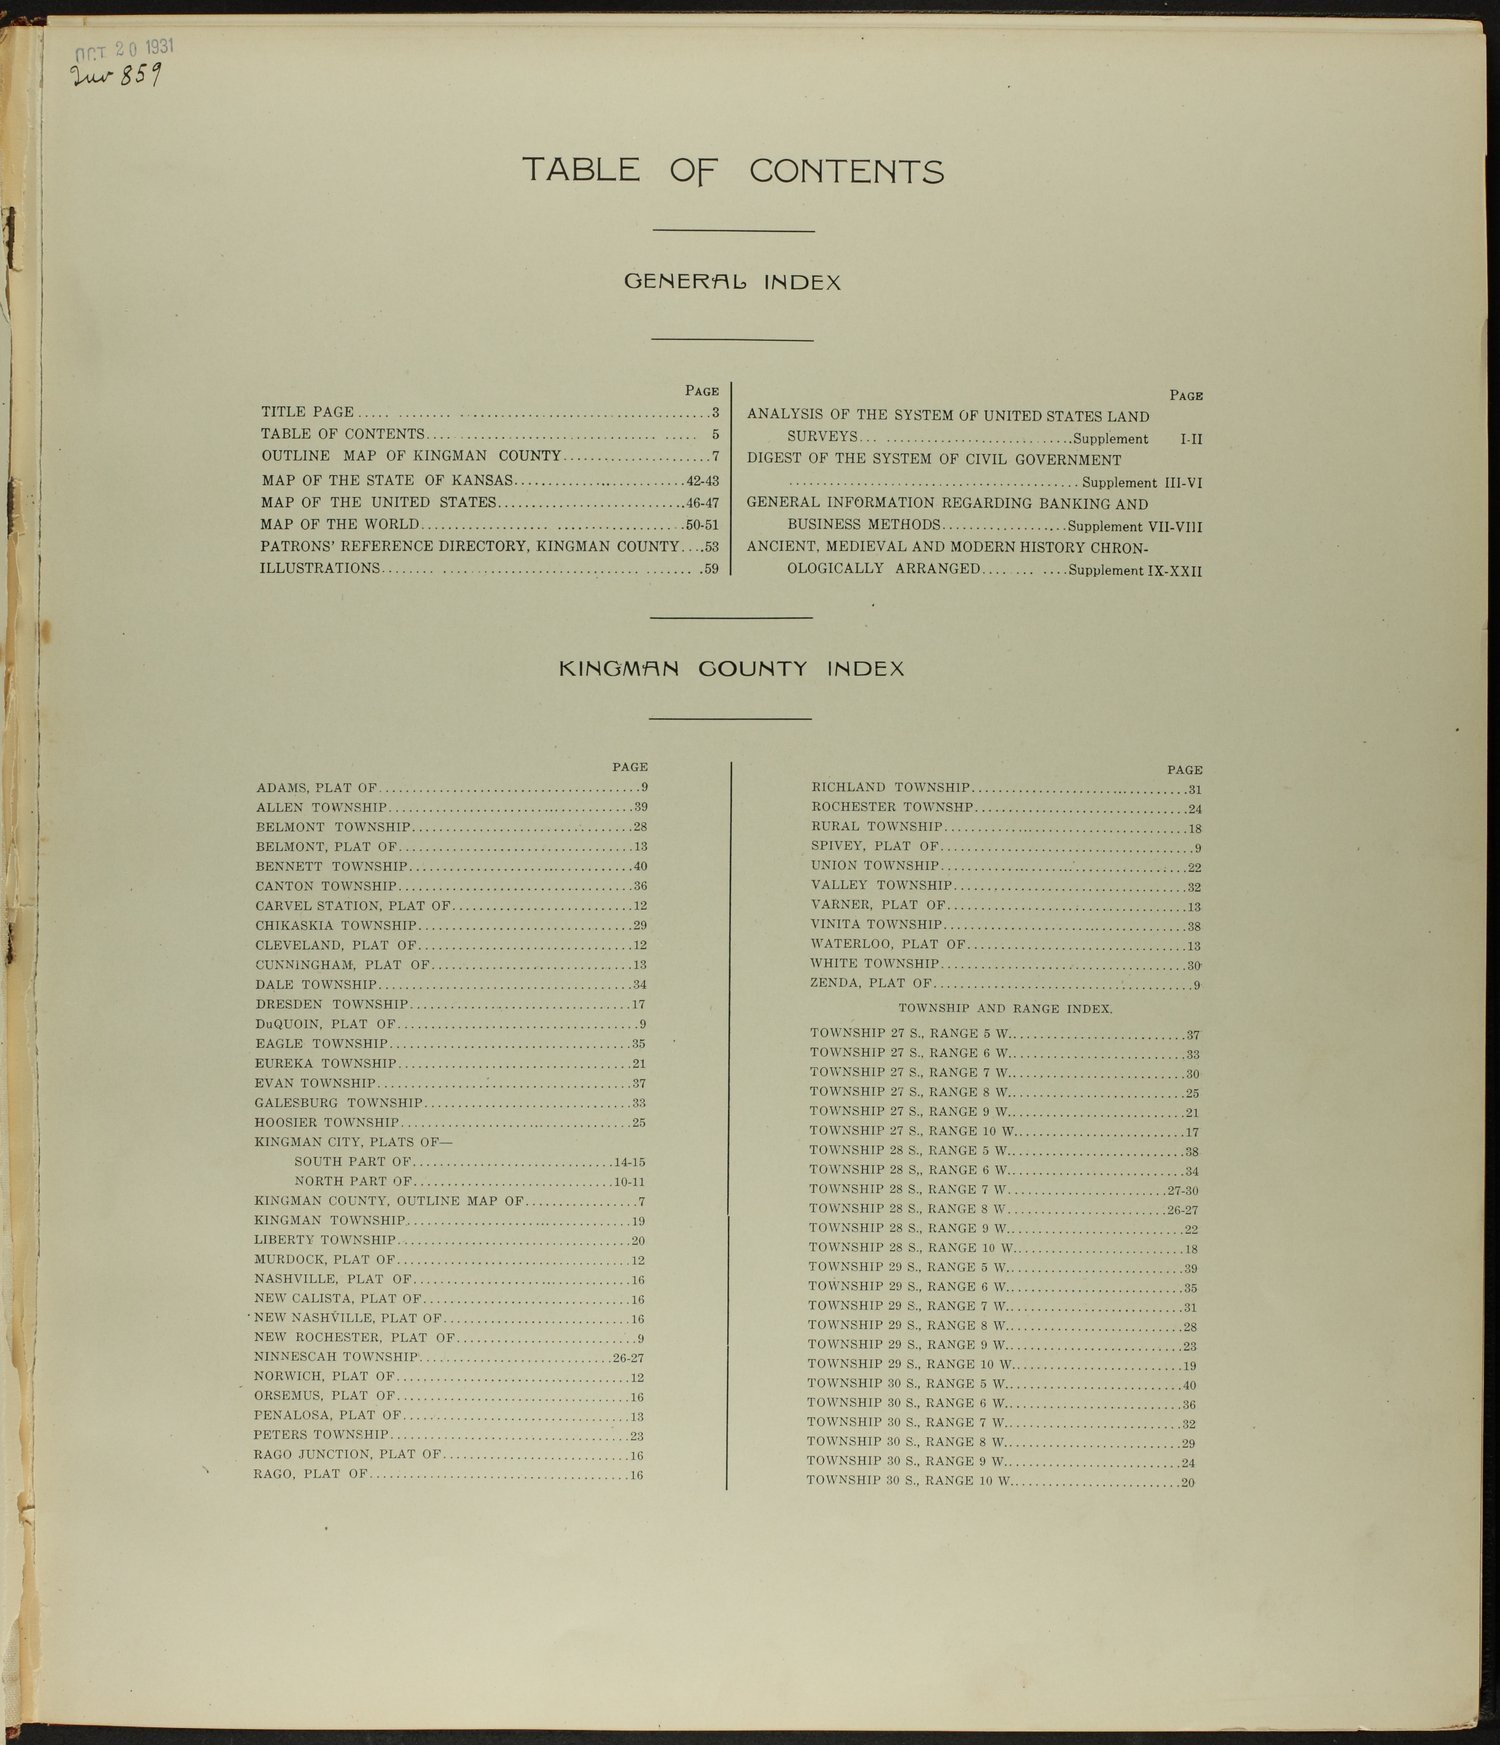 Standard atlas of Kingman County, Kansas - Table of Contents